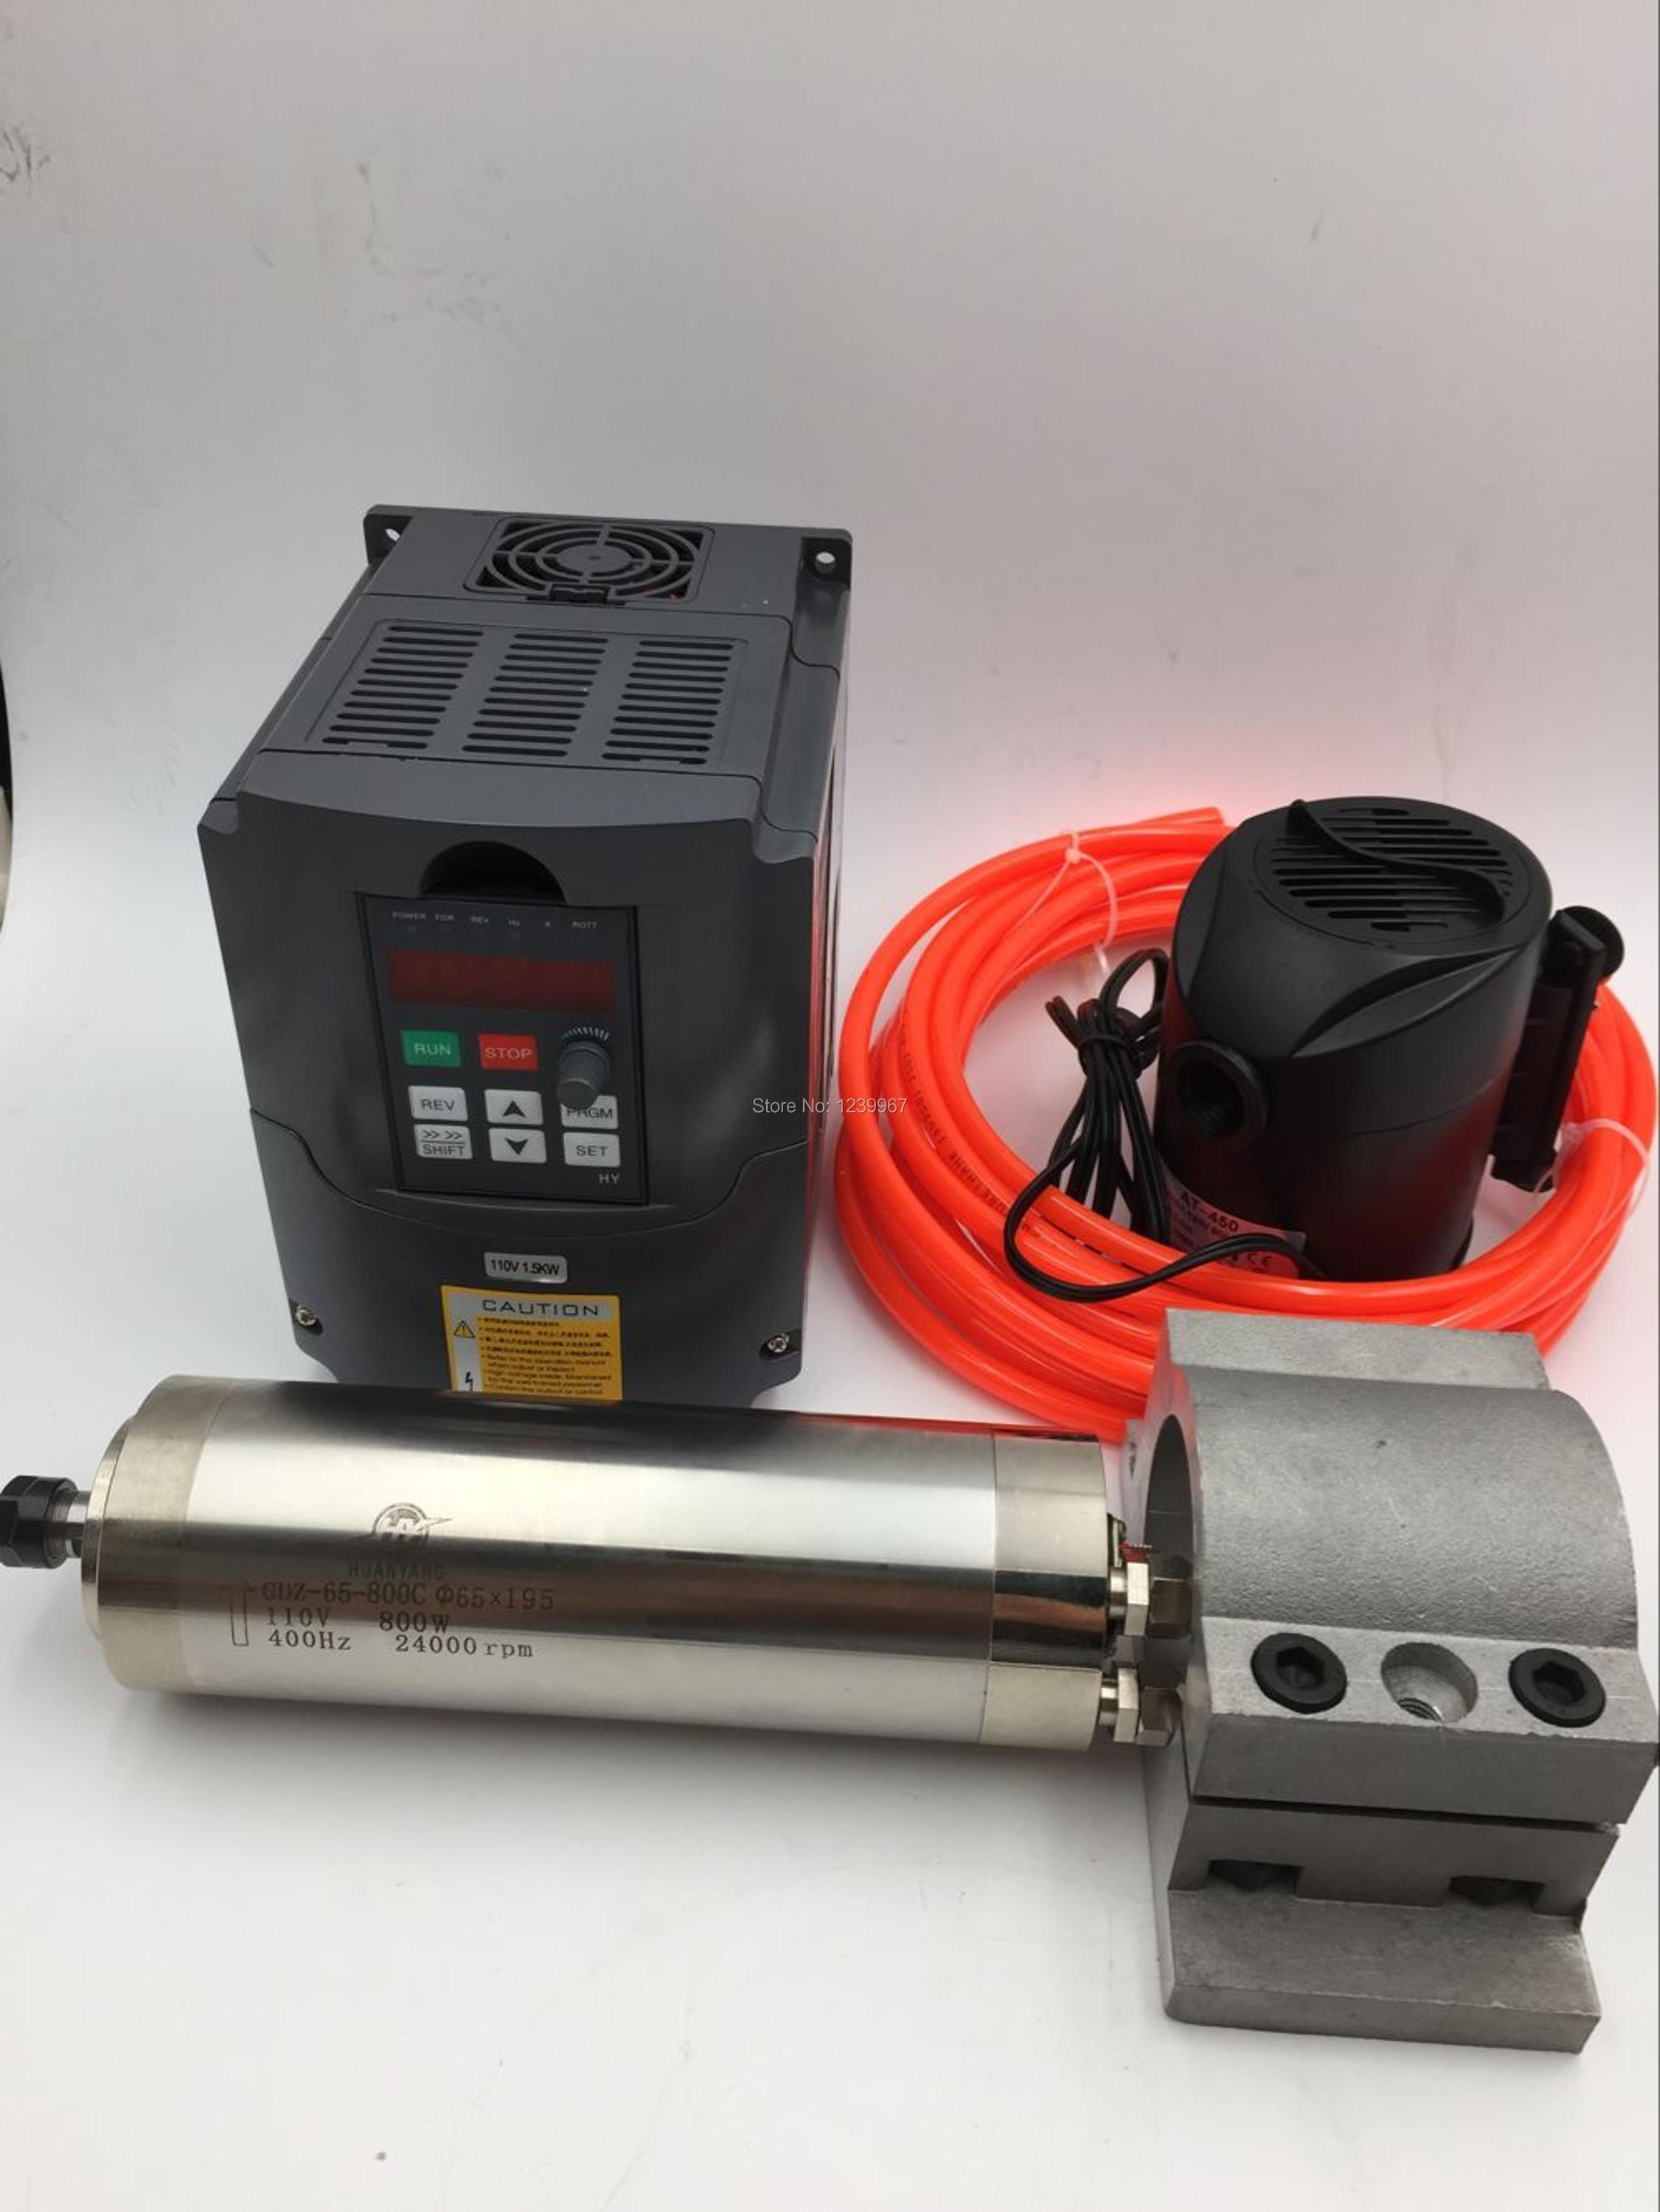 800W Water Cooling CNC <font><b>Spindle</b></font> <font><b>Motor</b></font> <font><b>110V</b></font>+1.5KW <font><b>110v</b></font> VFD Inverter + Bracket + Water Pump/Pipe for CNC Engraving Milling Machine image